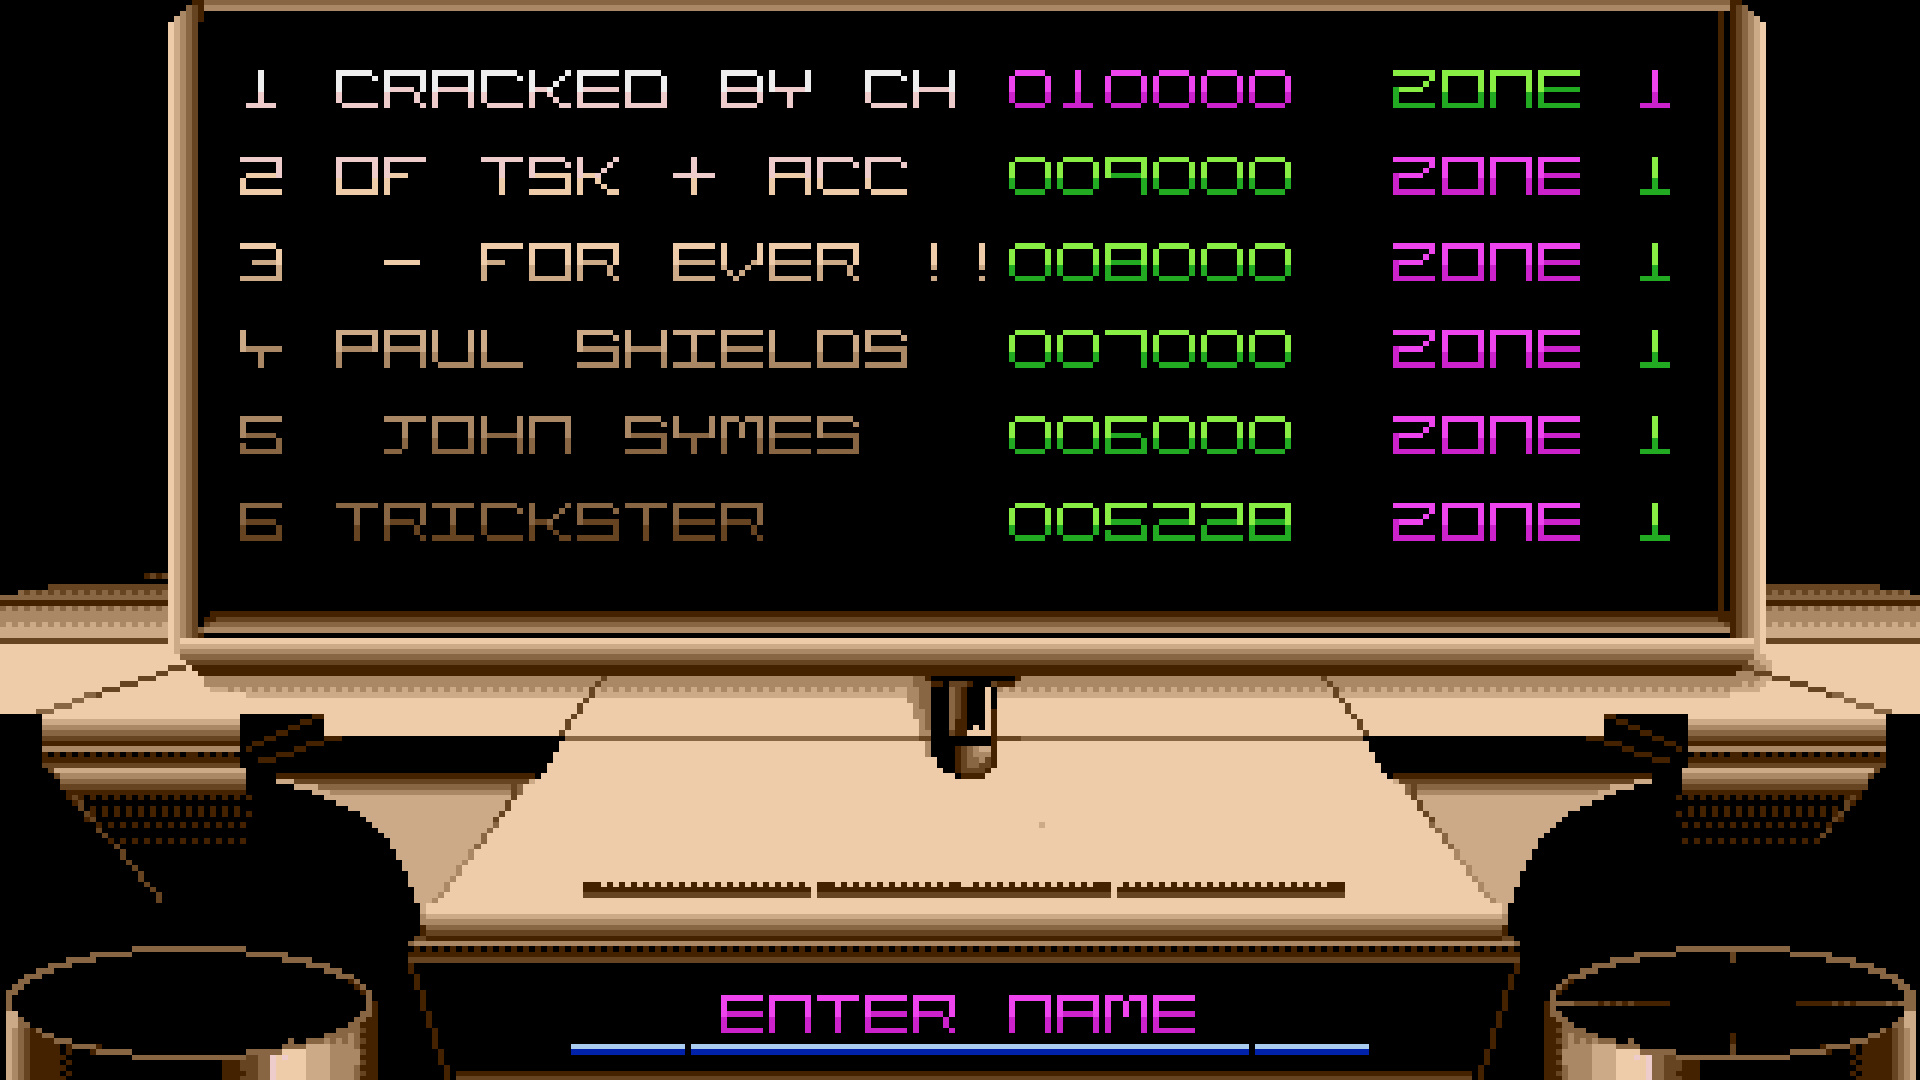 TheTrickster: Jug (Amiga Emulated) 5,228 points on 2015-08-01 18:40:01